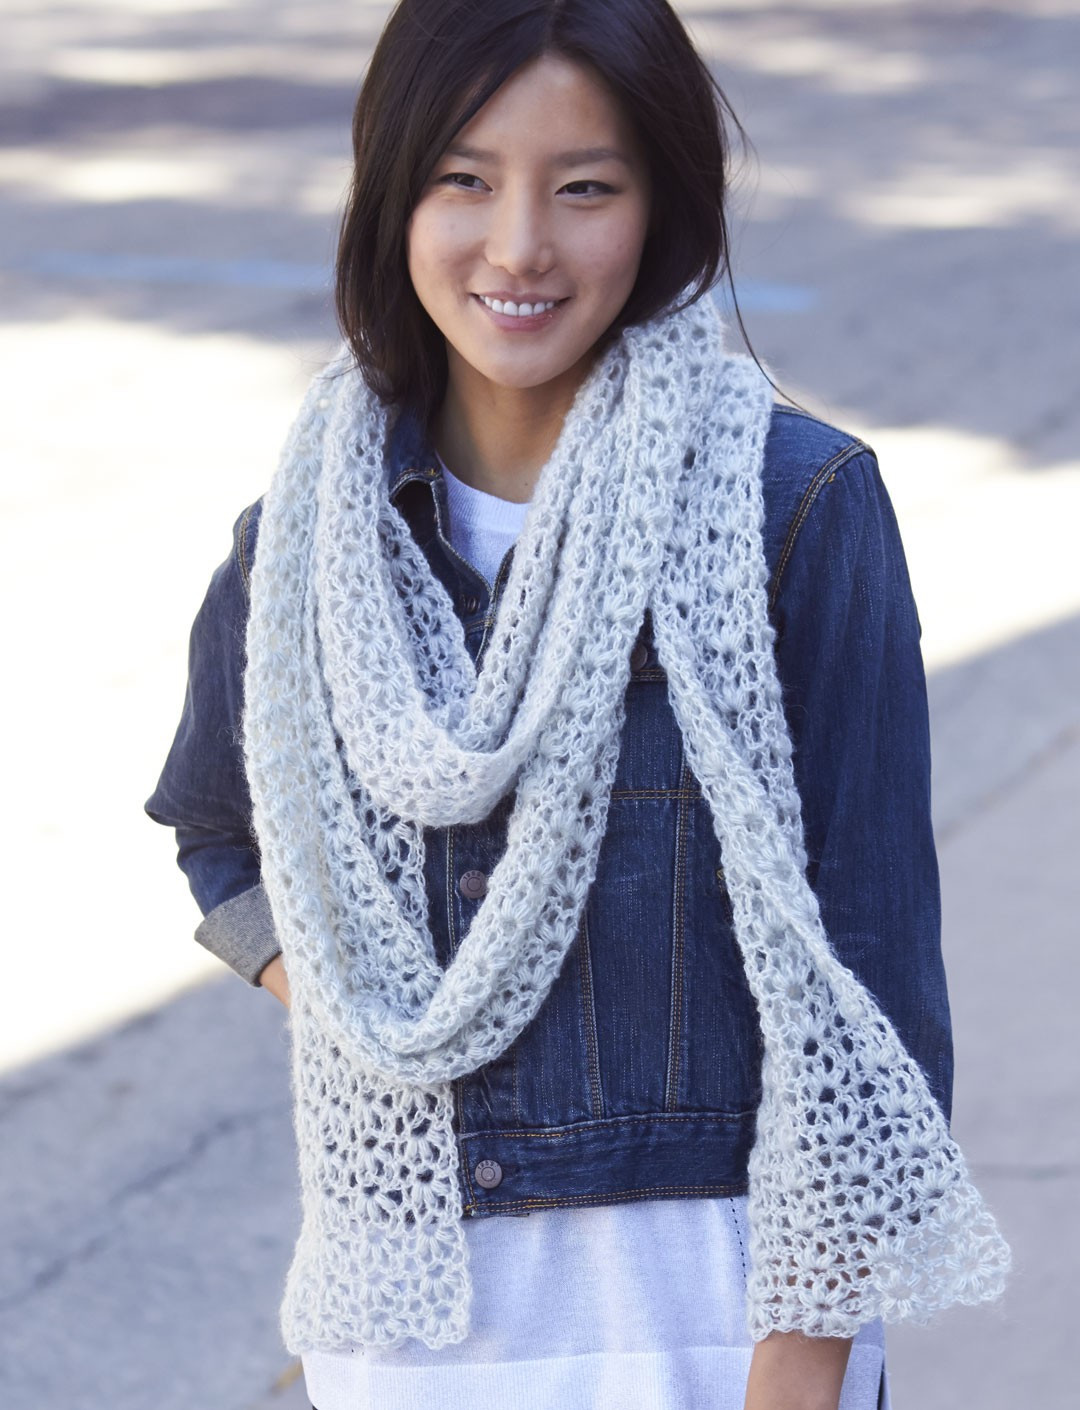 Unique Patons Snow Puff Scarf Crochet Pattern Yarnspirations Crochet Patterns Of Contemporary 47 Pictures Yarnspirations Crochet Patterns